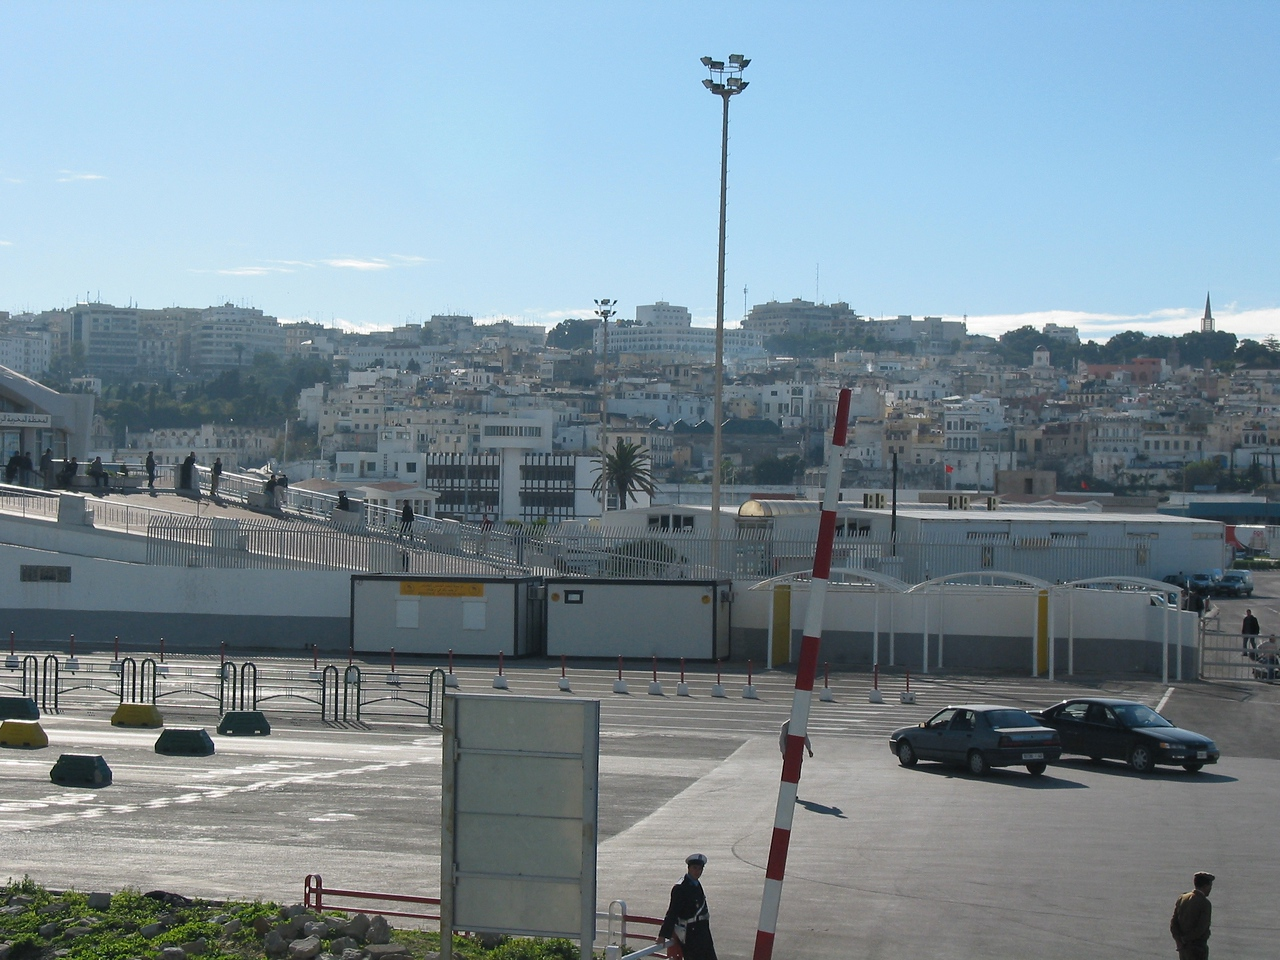 A look back at Tangier as we depart.